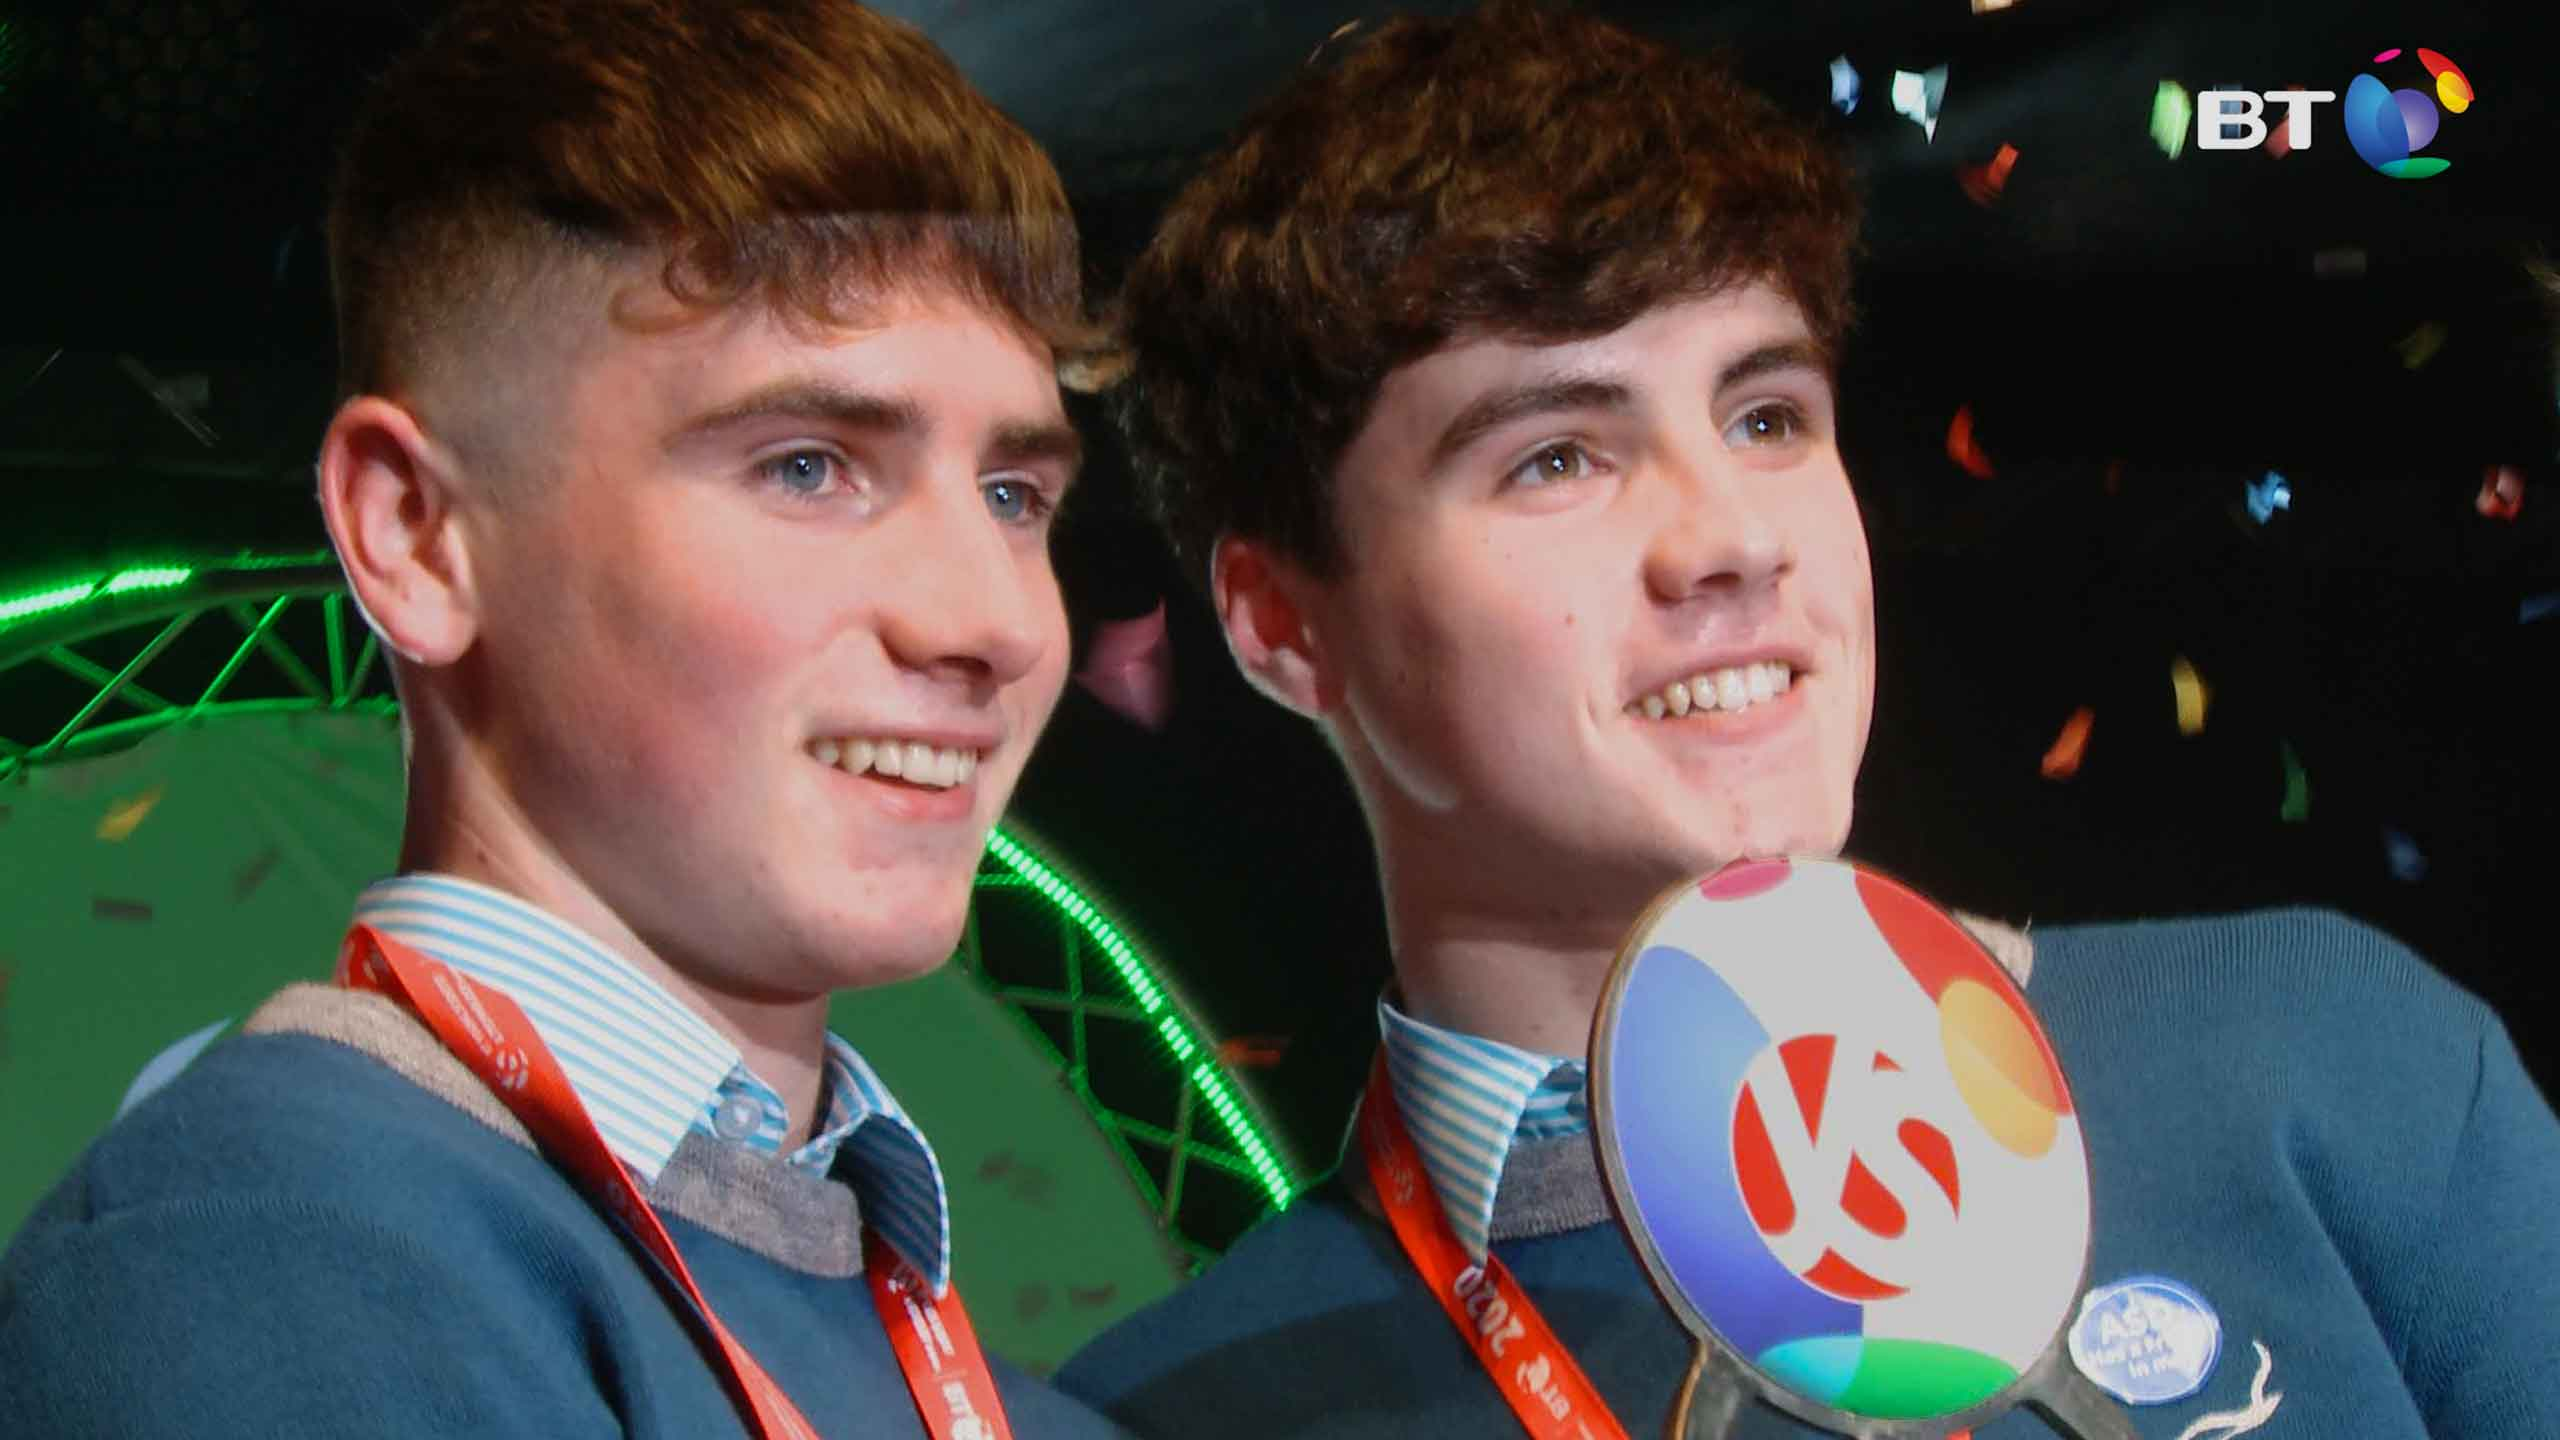 Comment Organiser Un Party D Ado video: ballincollig students win 2020 young scientist